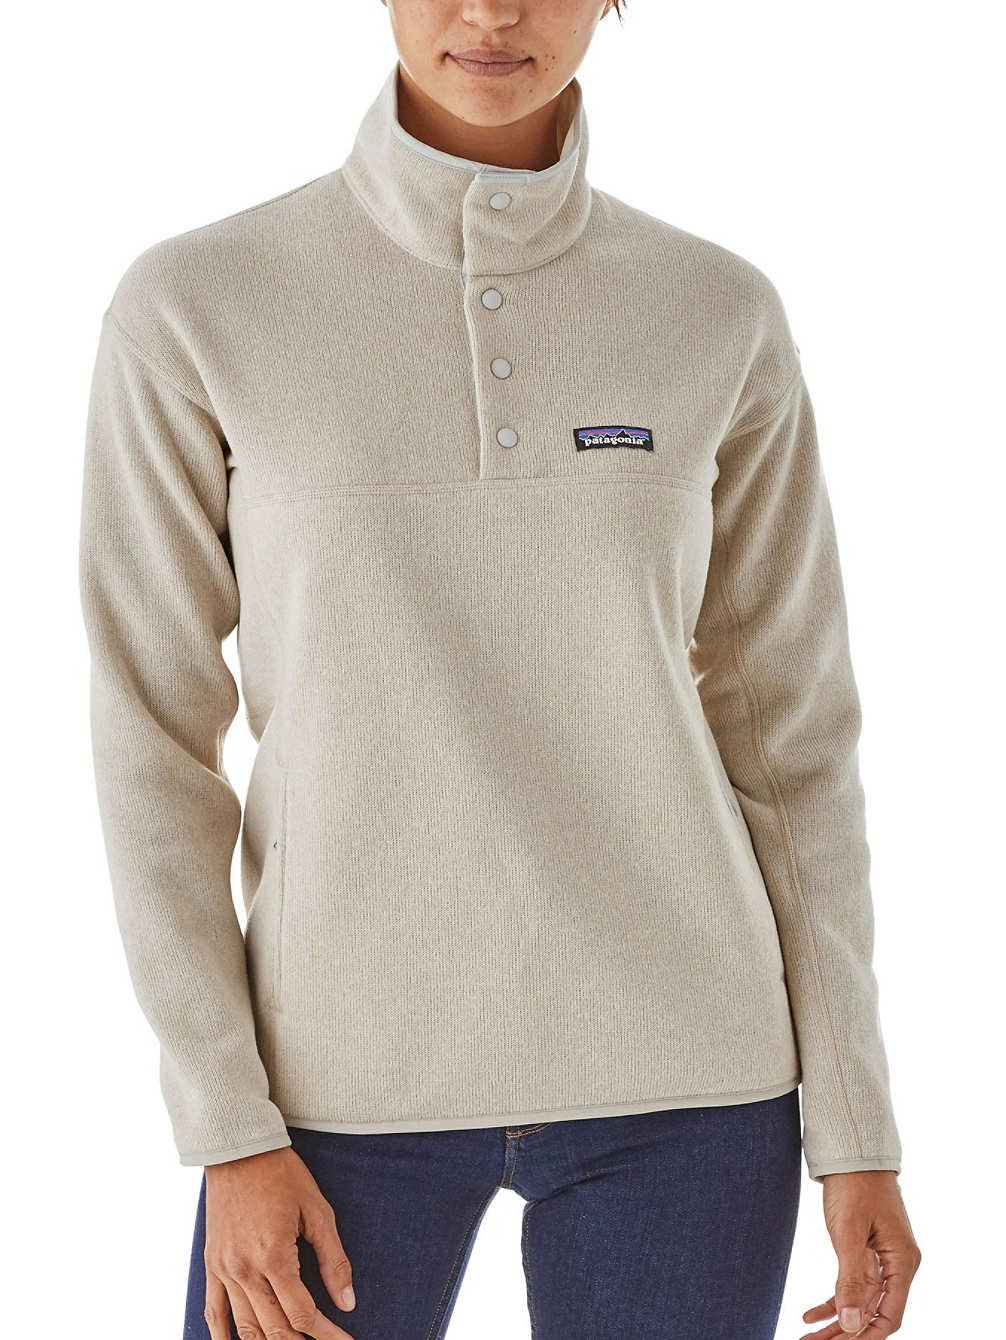 Patagonia LW Better Marsupial P/O Polar, Mujer, Azul (Bleached Stone), M 26010